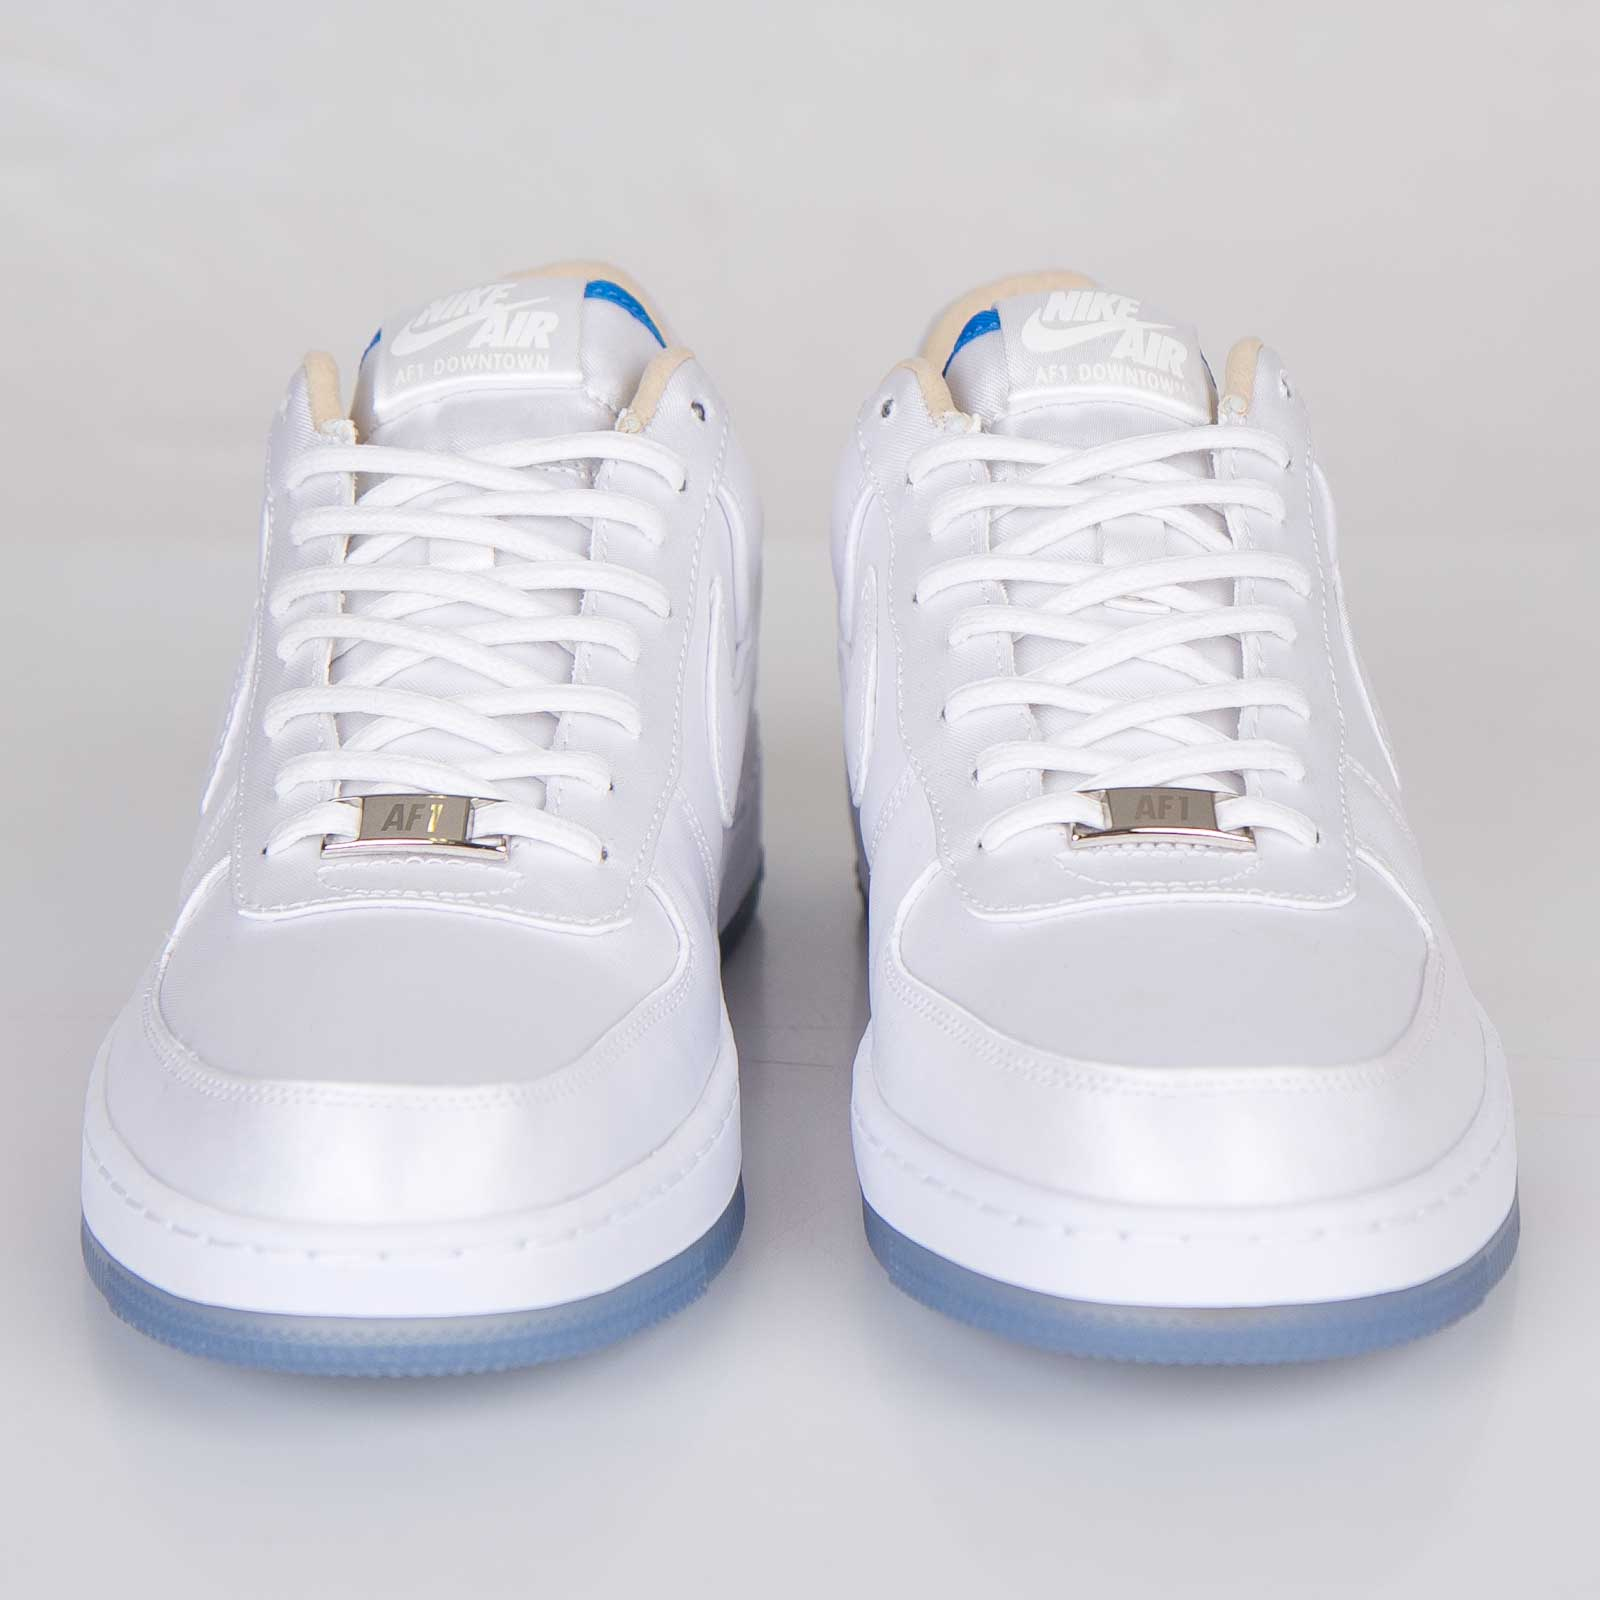 sports shoes e7caa f16a3 Nike Air Force 1 Downtown QS - 635273-100 - Sneakersnstuff   sneakers    streetwear online since 1999